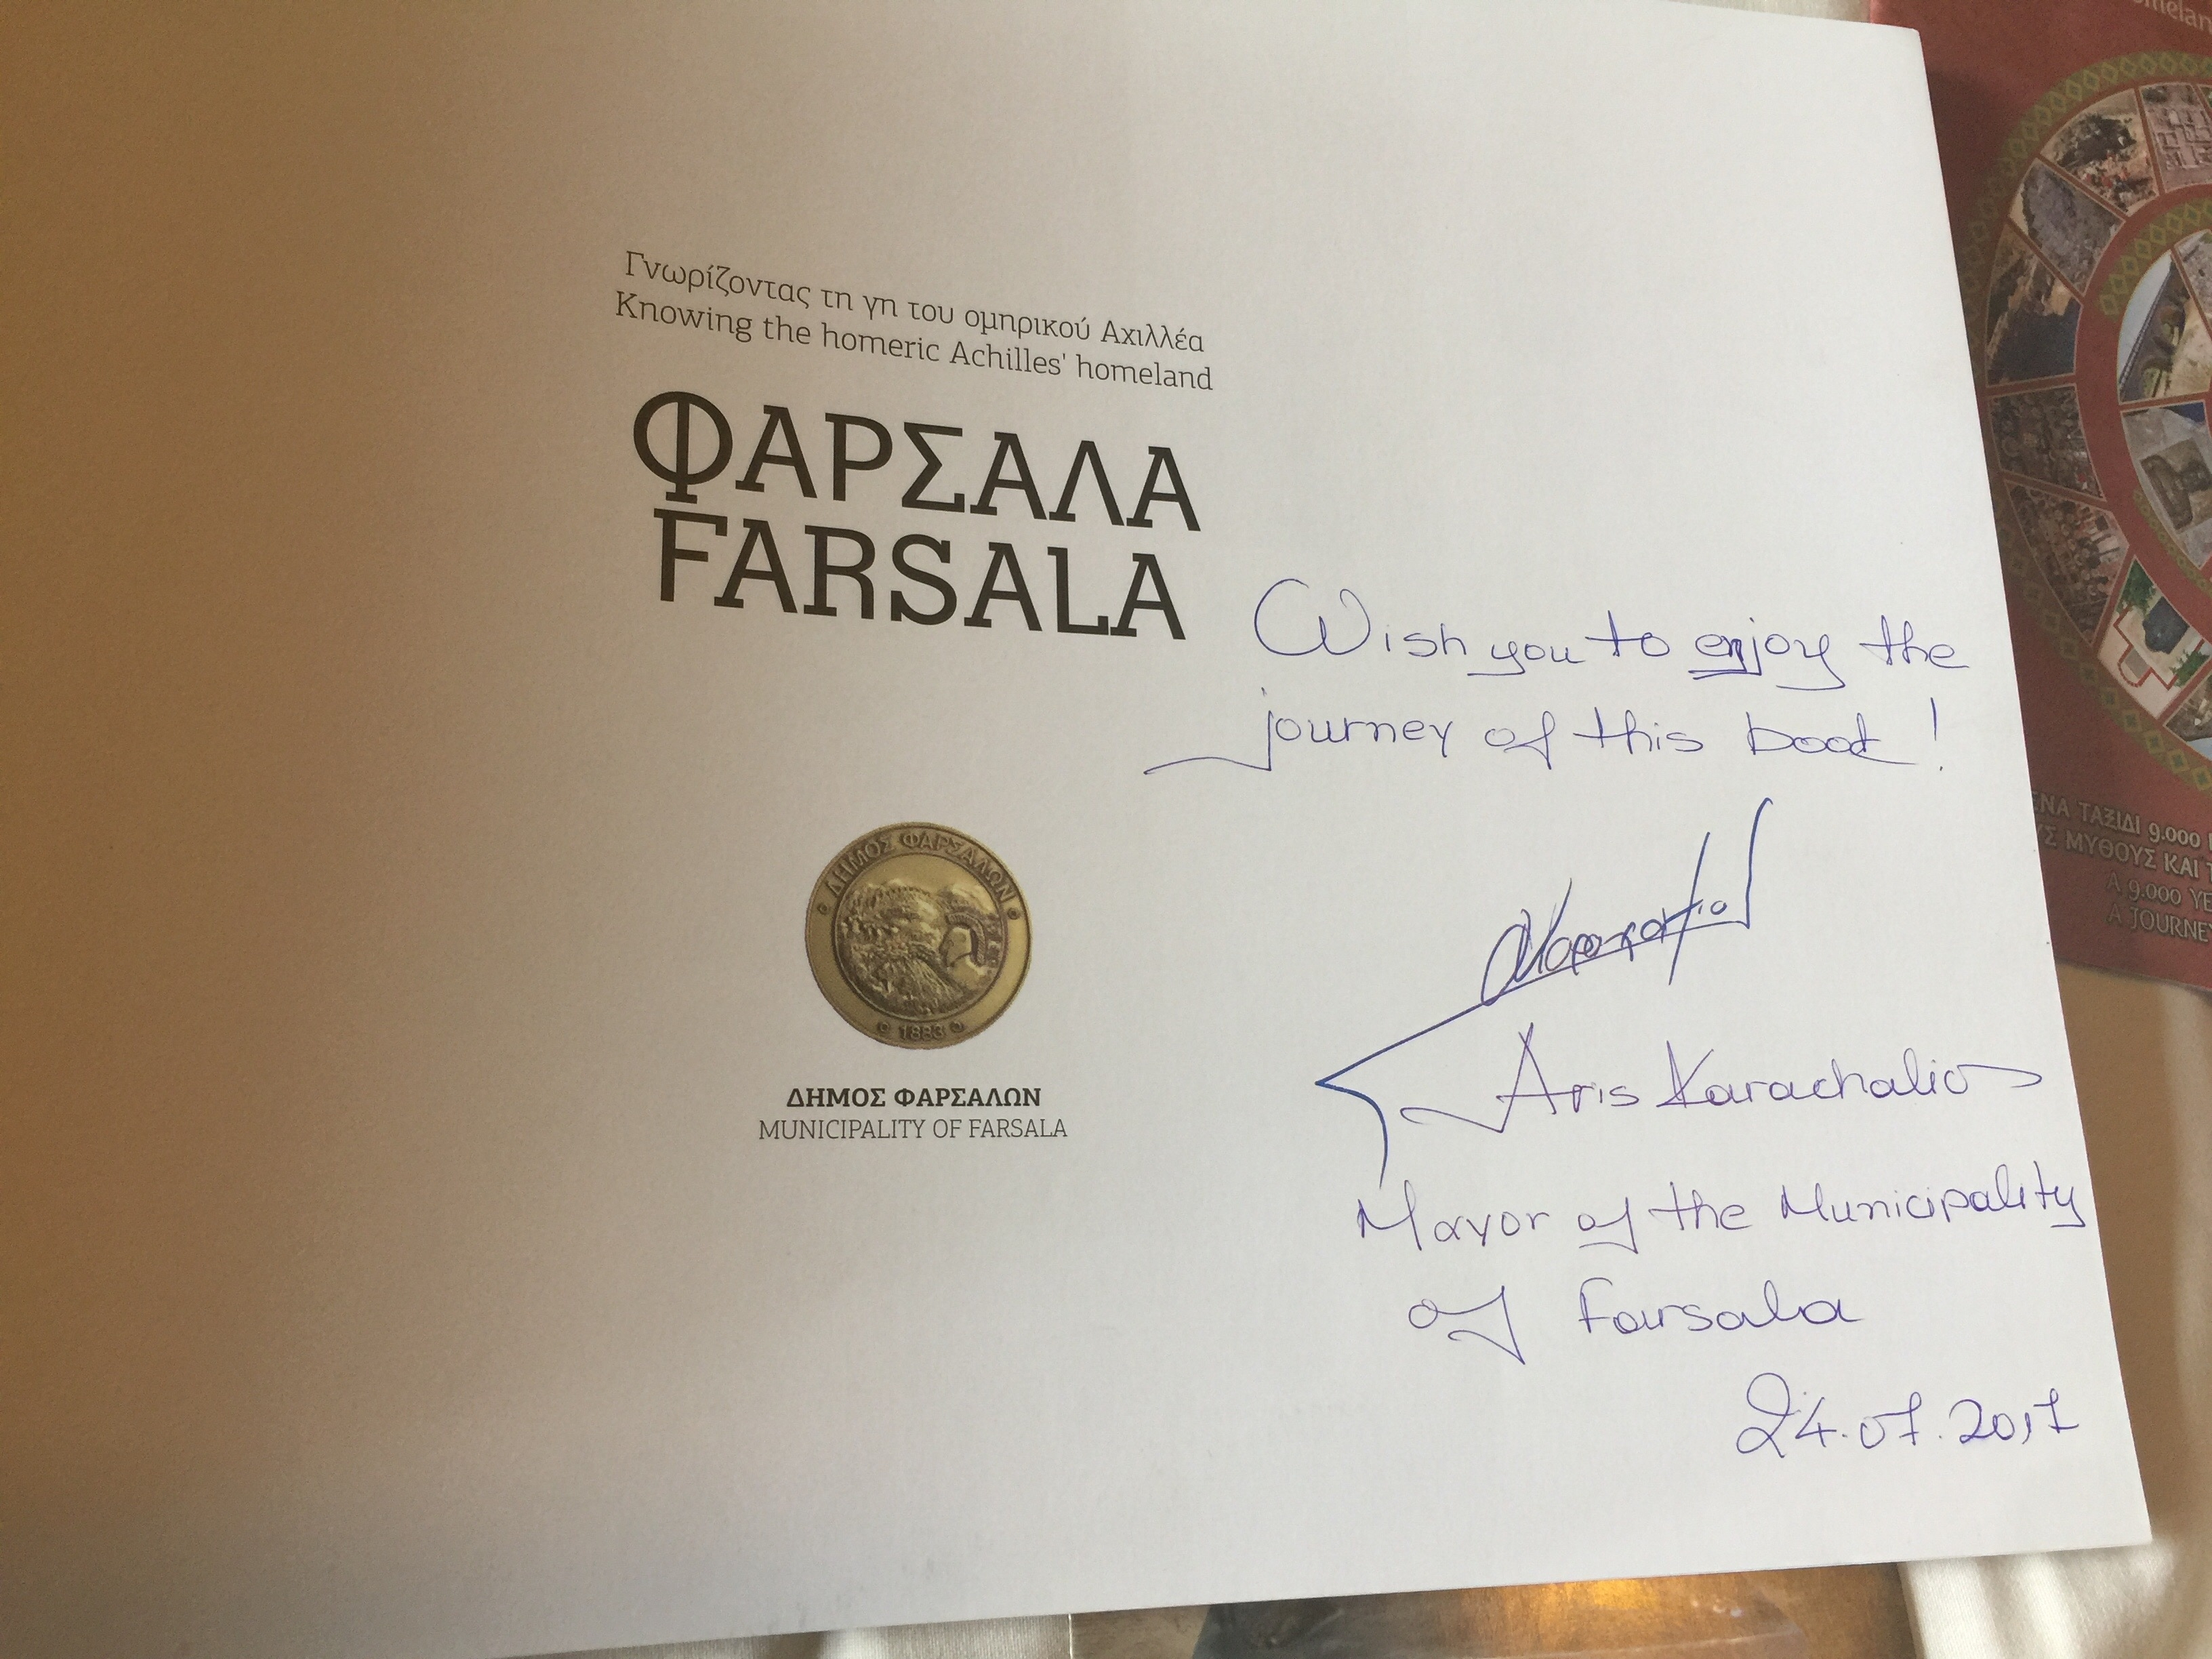 The mayor of Farsala gifted us autographed guides to the district!